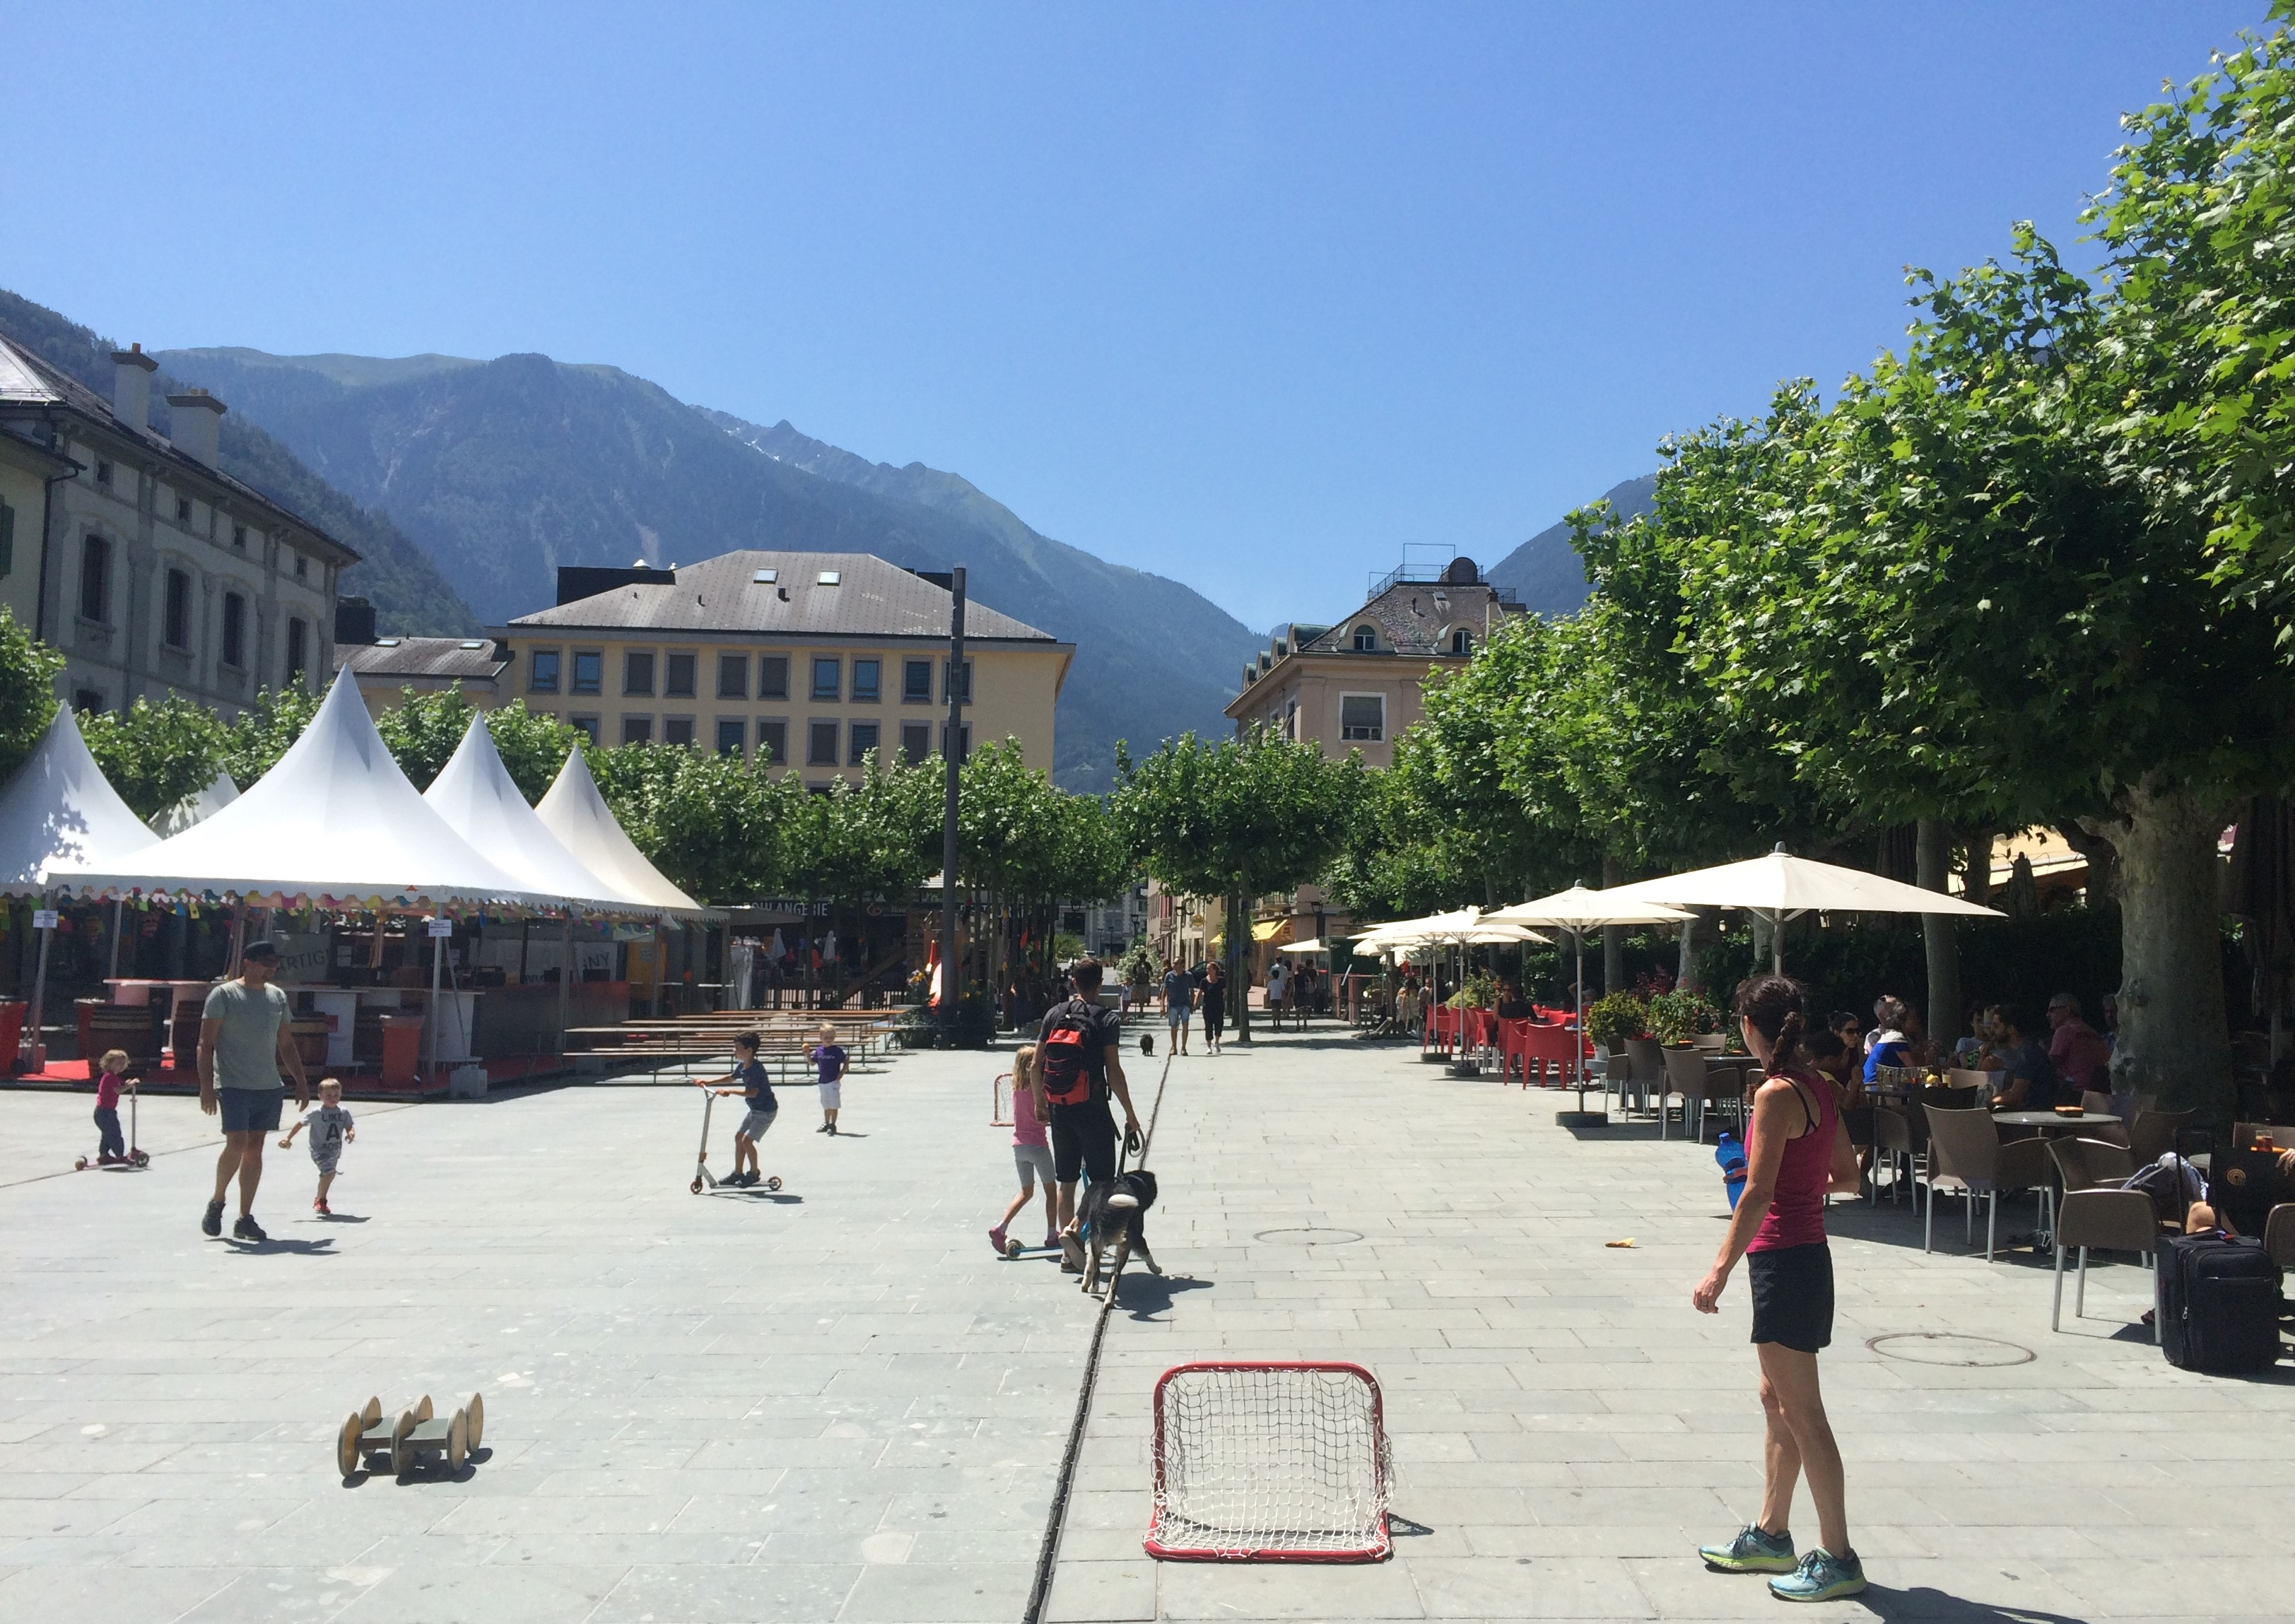 Martigny training center village square